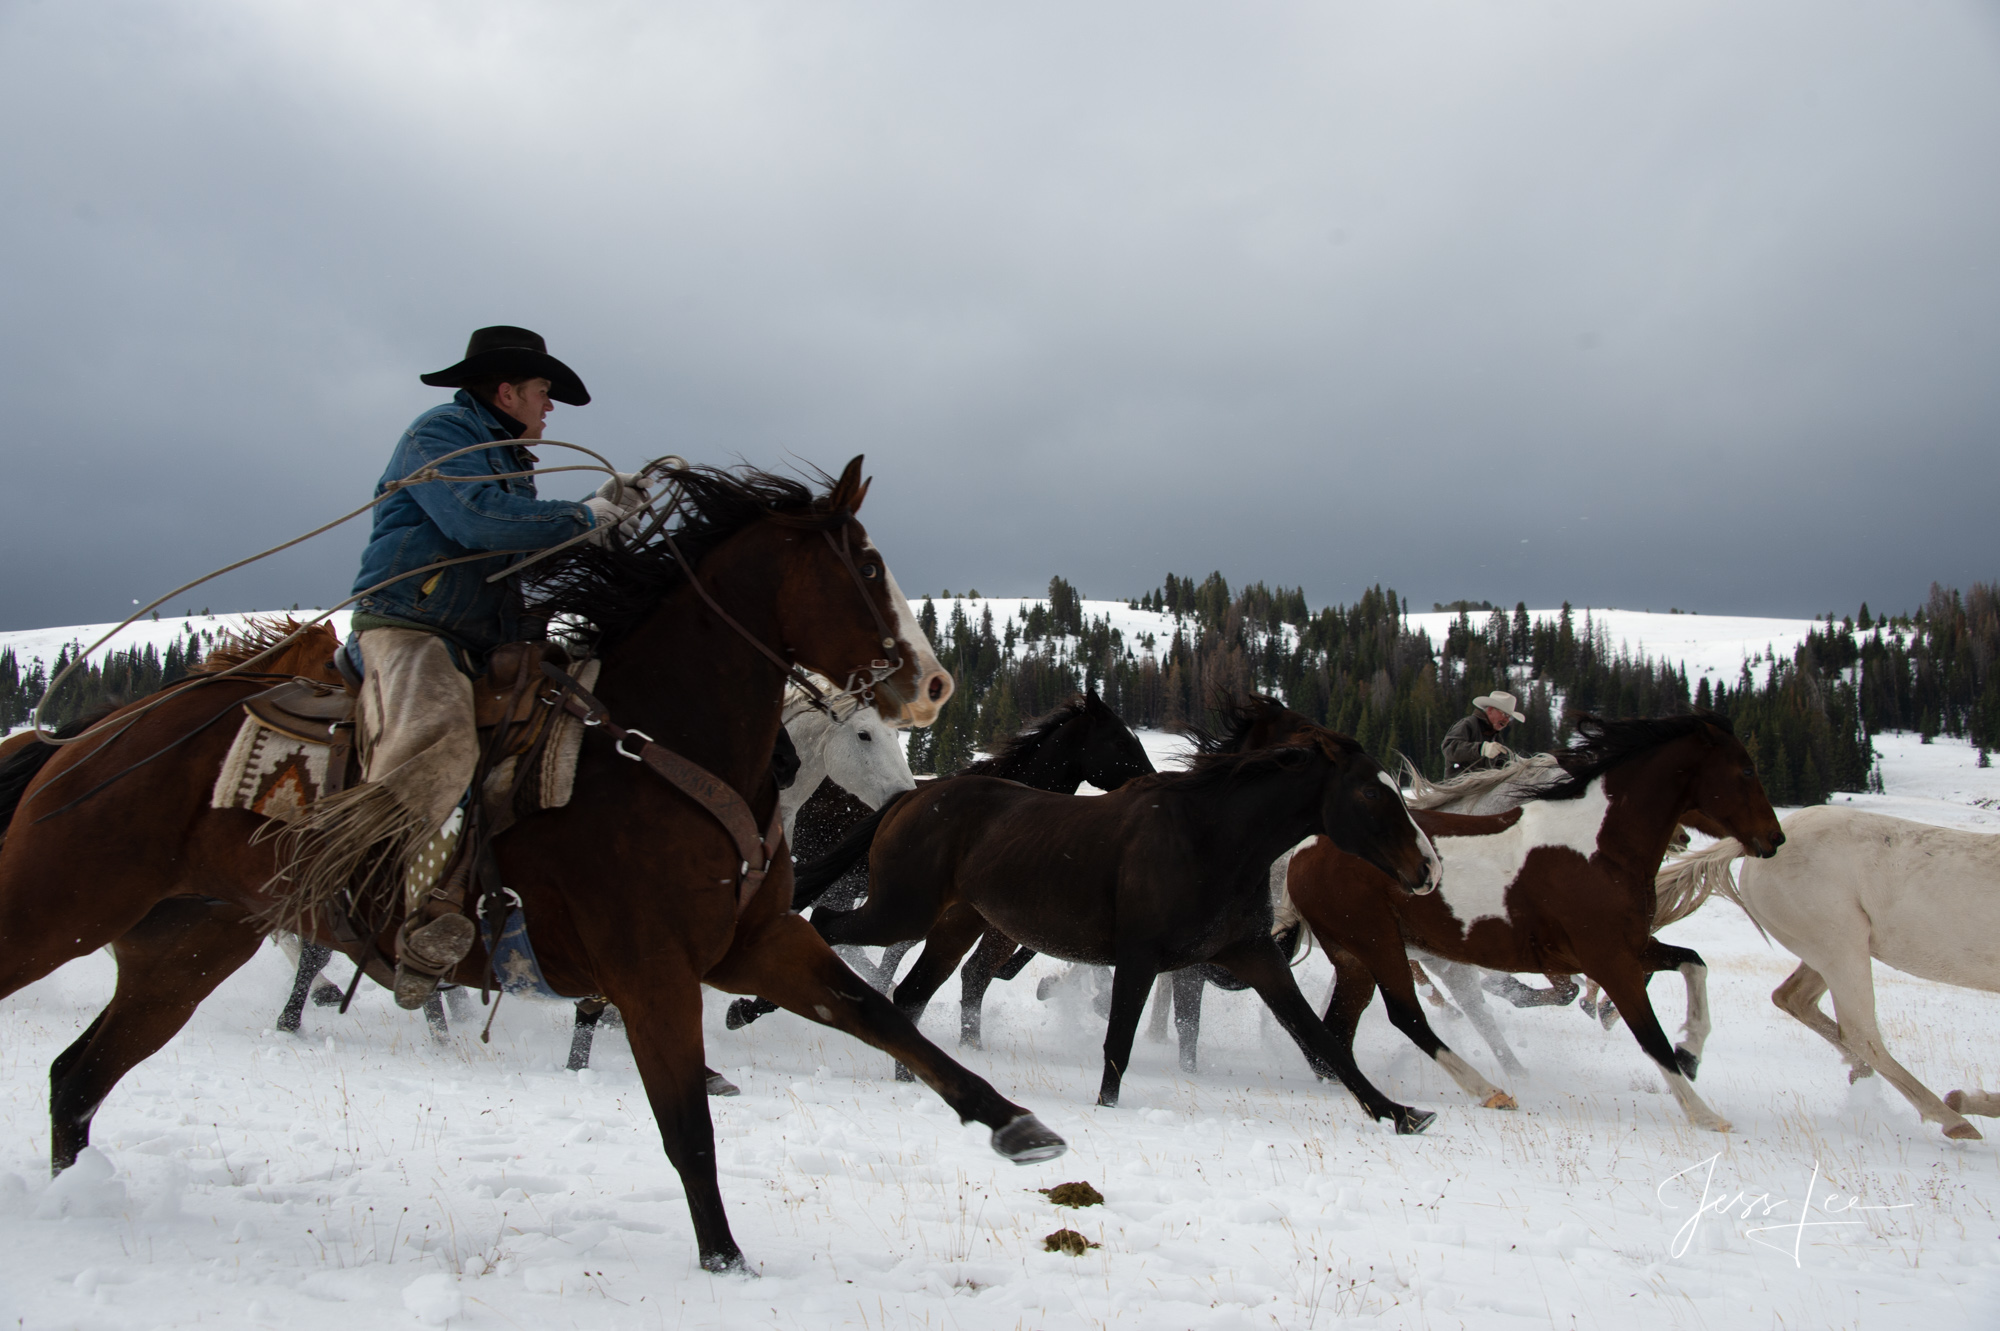 Fine Art Limited Edition Photography of Cowboys, Horses and life in the West. Cowboy wrangler gathering horses to bring them...